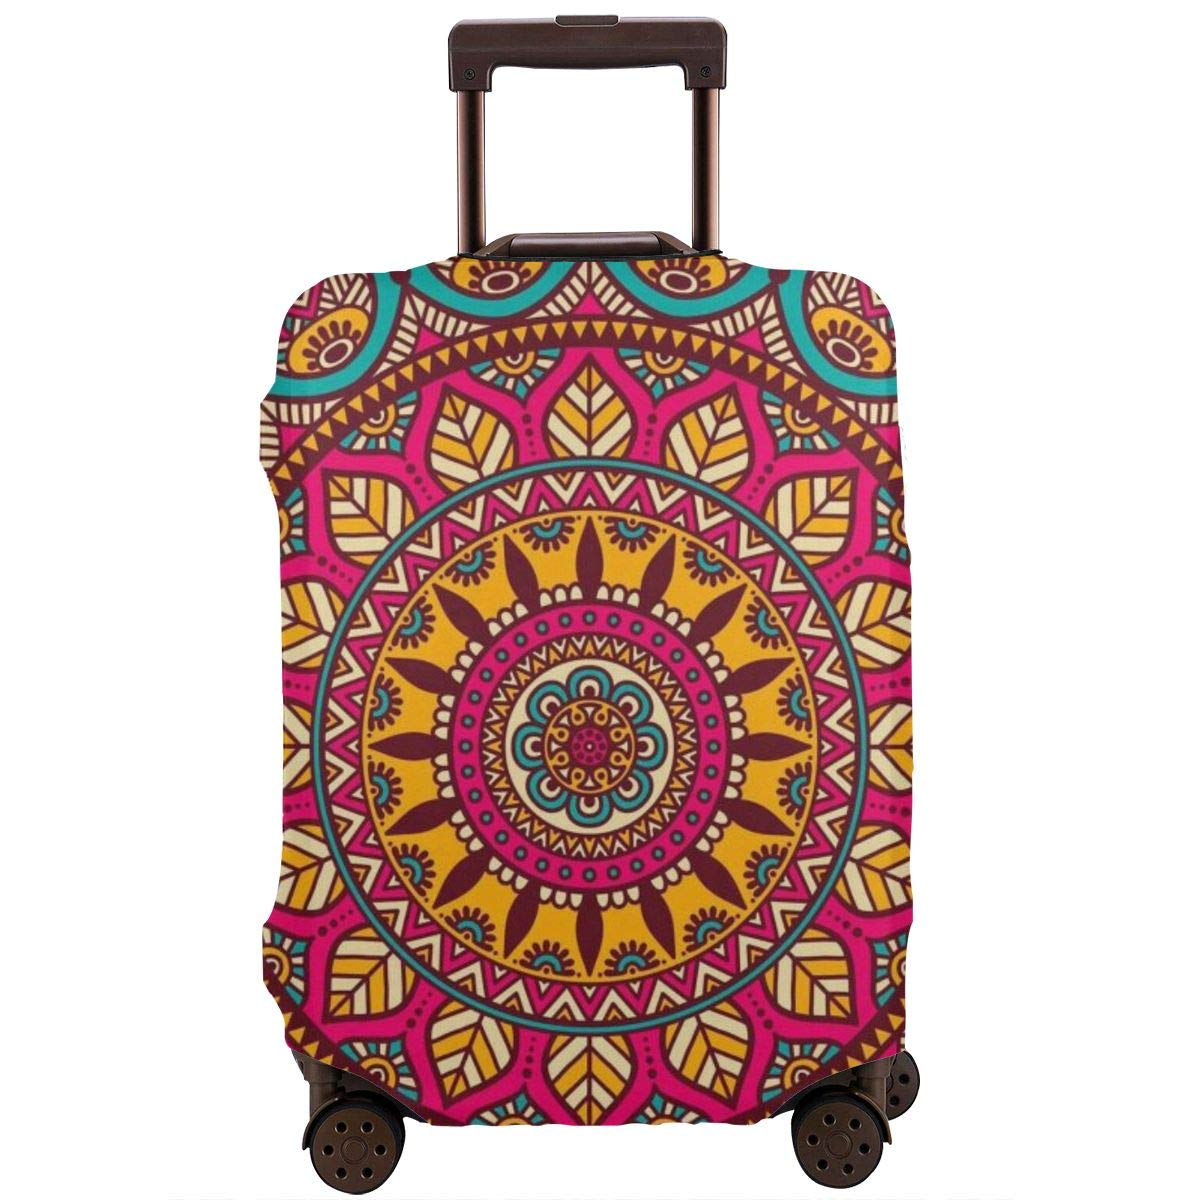 Mandala Floral Elastic Travel Luggage Cover,Double Print Fashion Washable Suitcase Protector Cover Fits 18-32inch Luggage